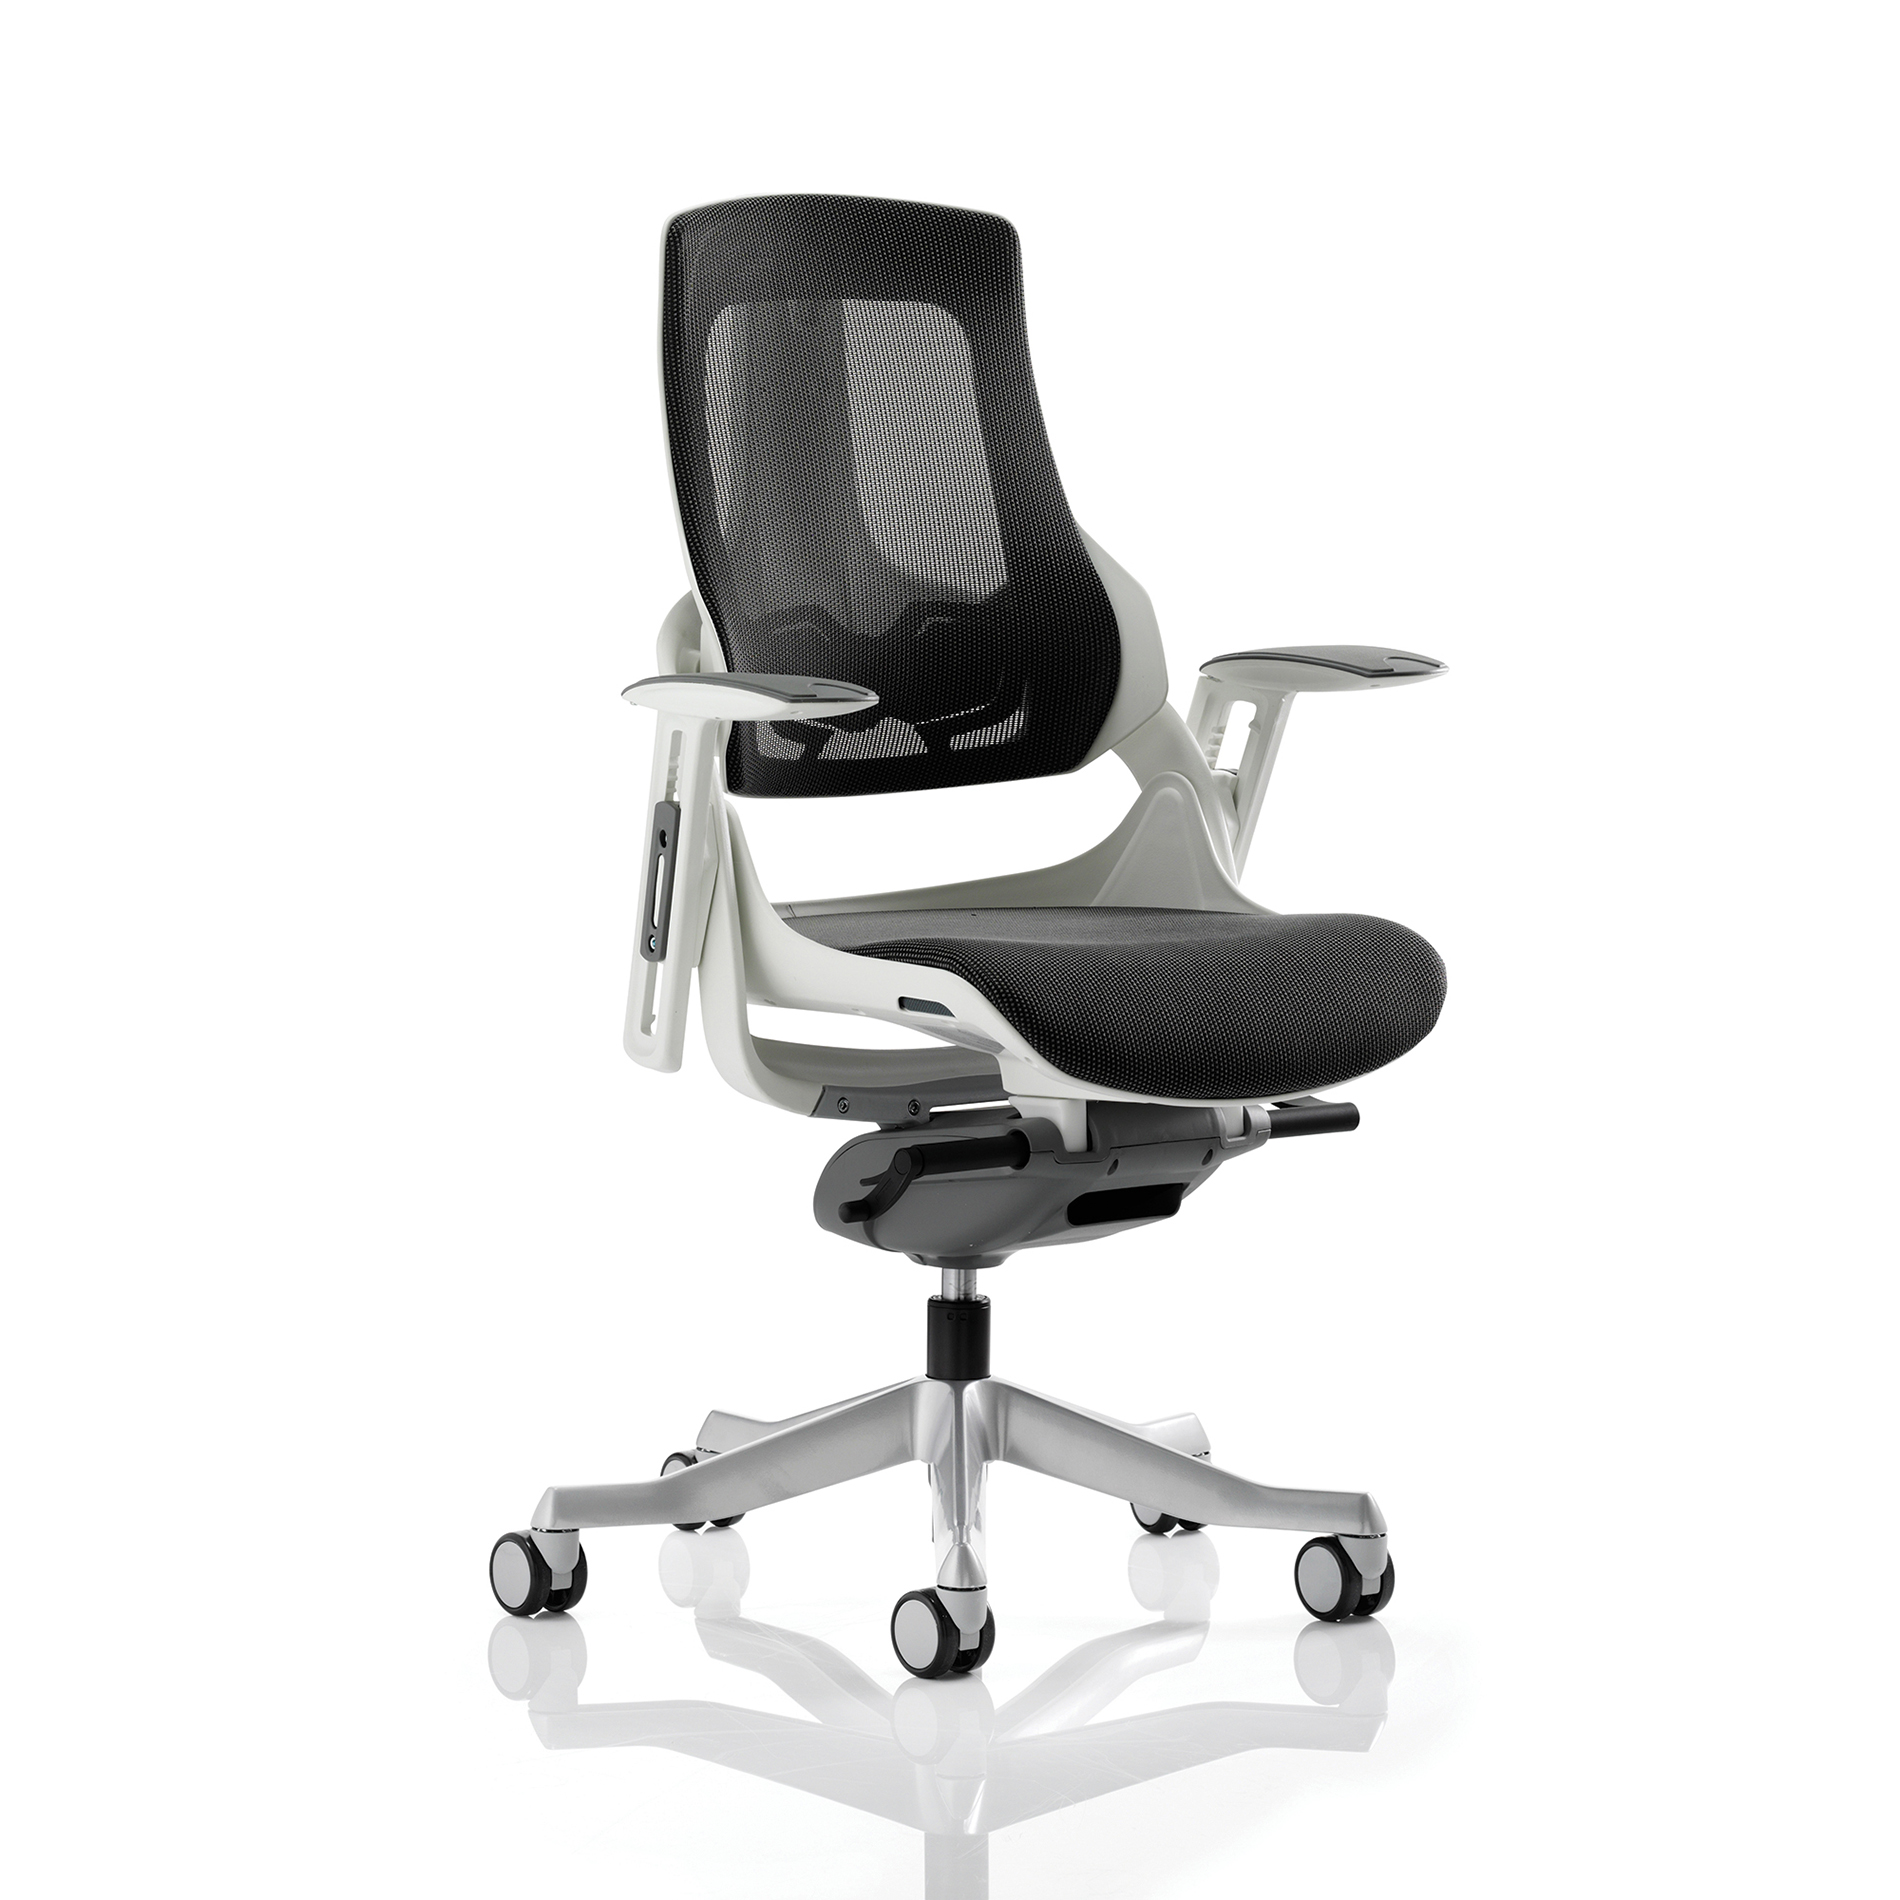 Adroit Zure Executive Chair With Arms Mesh Charcoal Ref EX000111